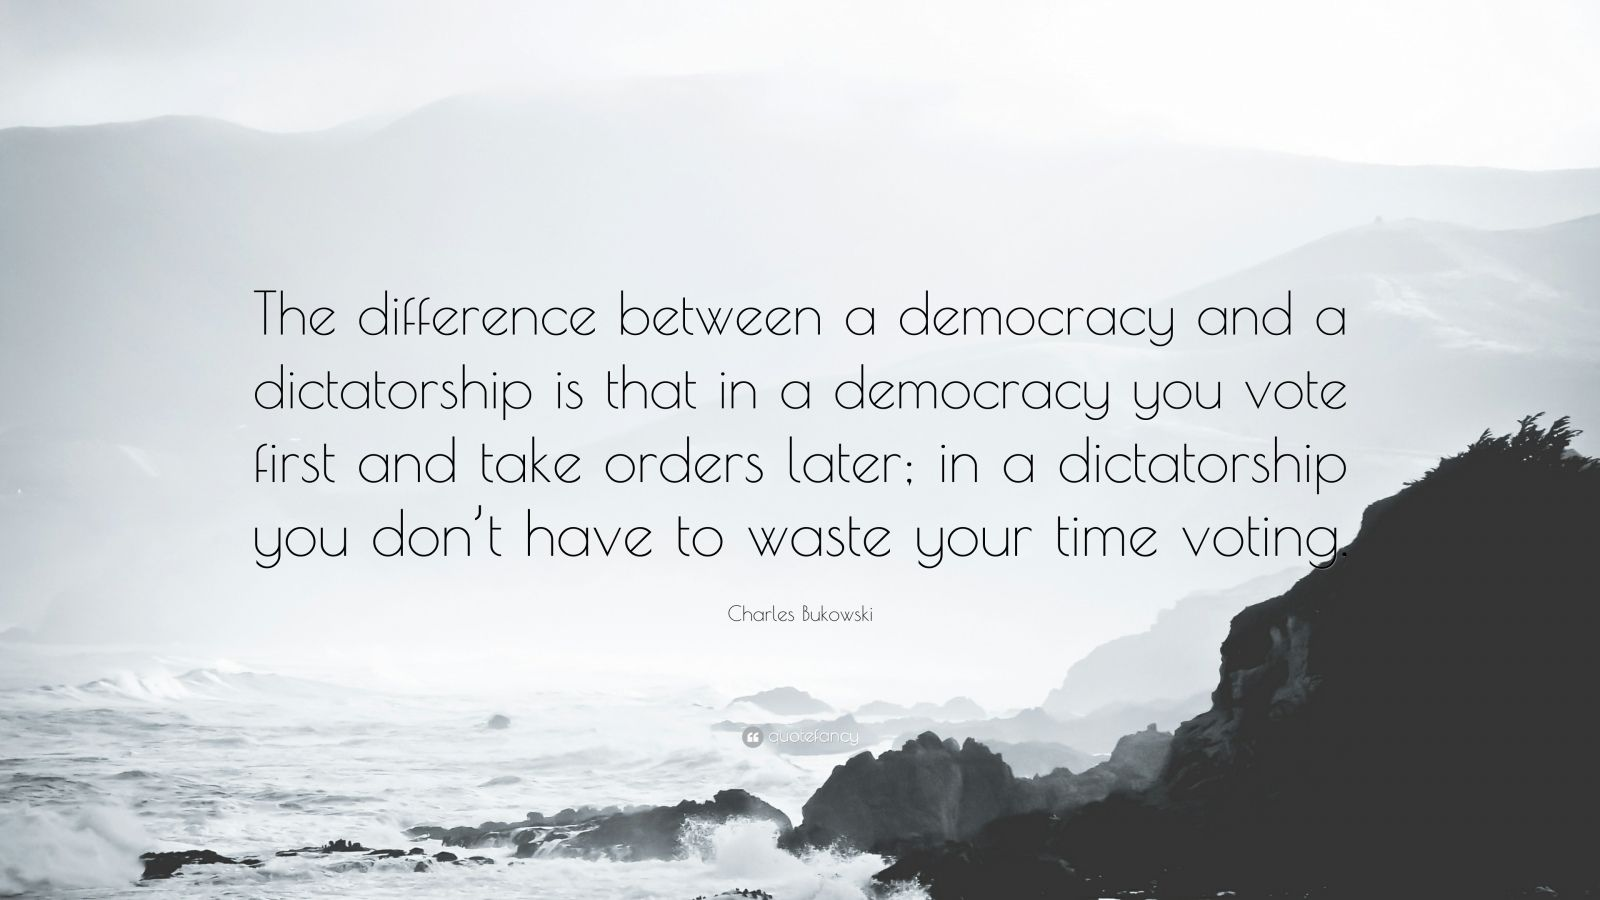 """Charles Bukowski Quote: """"The difference between a democracy and a dictatorship is that in a democracy you vote first and take orders later; in a dictatorship you don't have to waste your time voting."""""""